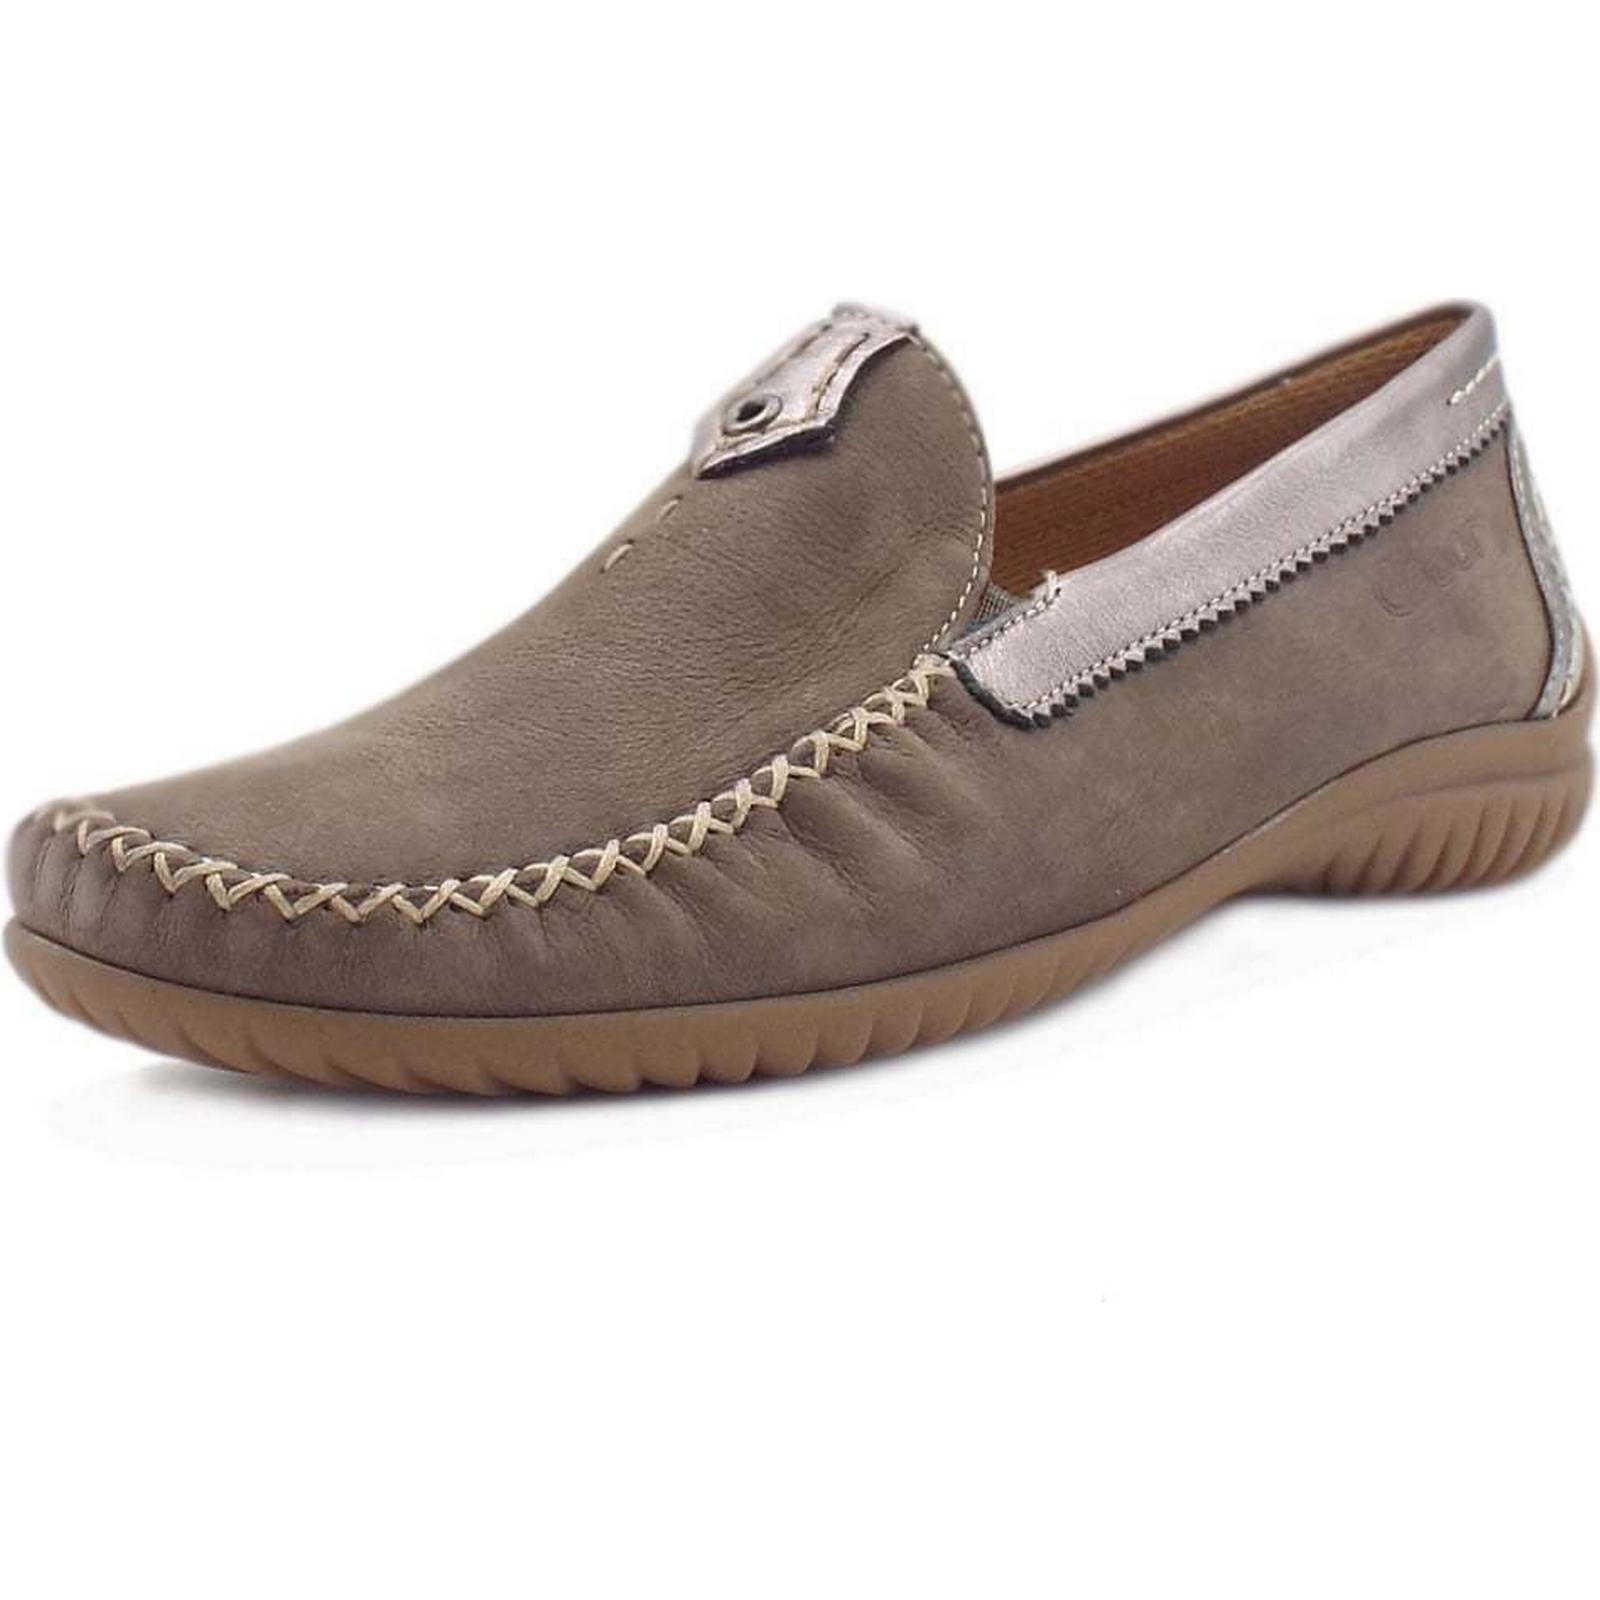 Gabor CALIFORNIA GABOR LADIES MOCCASN 6 SHOE Colour: FUMO, Size: 6 MOCCASN c1a395